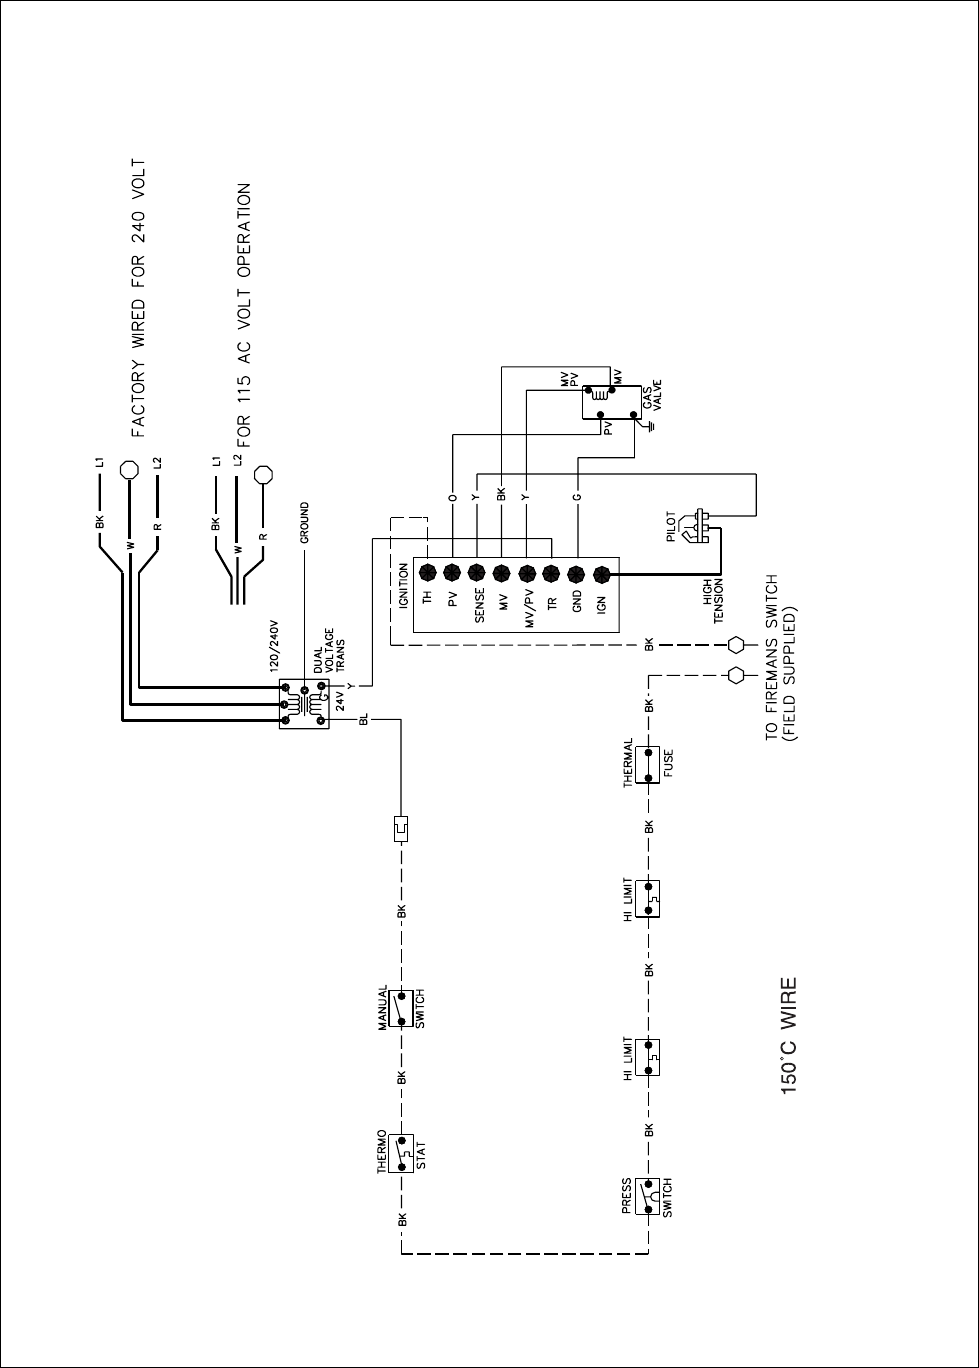 8d6755fc 4fe9 4ef1 a178 efd076c9bb93 bg12 page 18 of raypak swimming pool heater 105b user guide raypak 2100 wiring diagram at gsmx.co